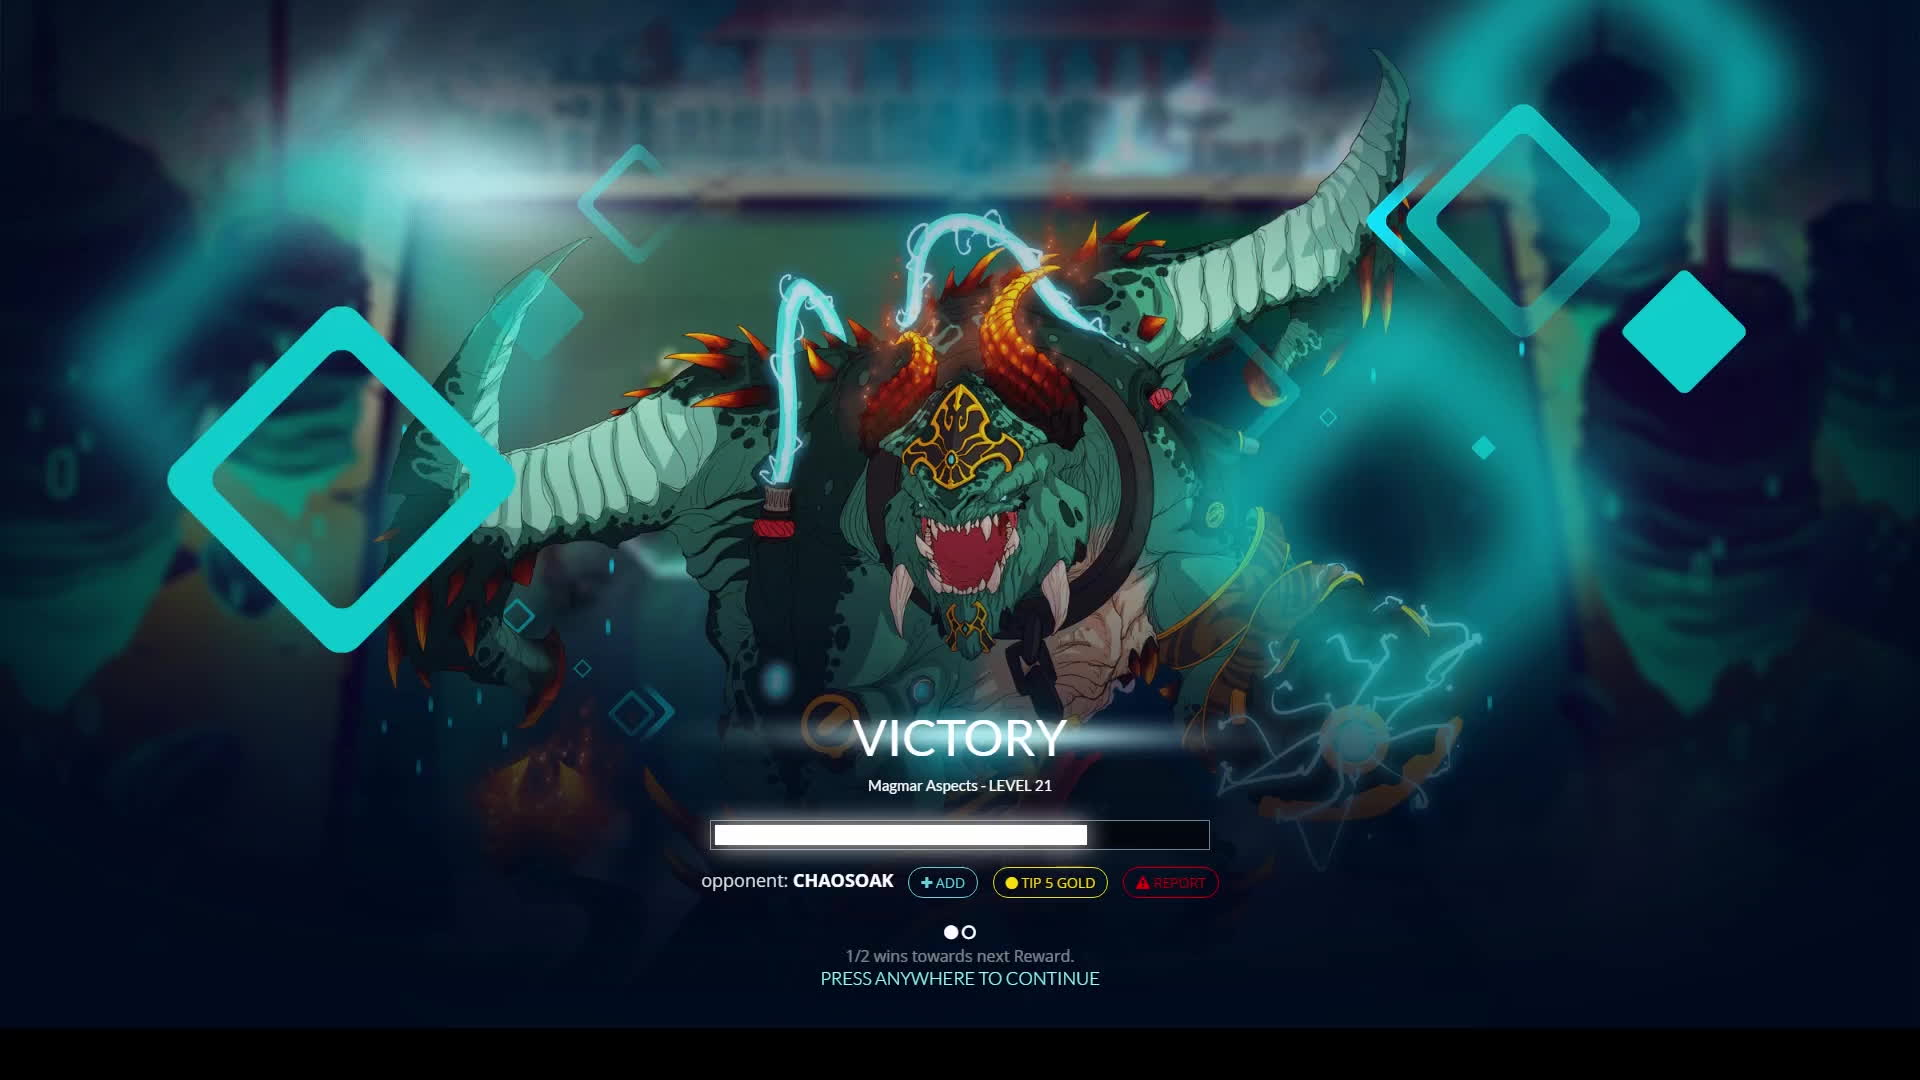 Duelyst, duelyst, [Duelyst] How it feels to be an S-Rank player GIFs